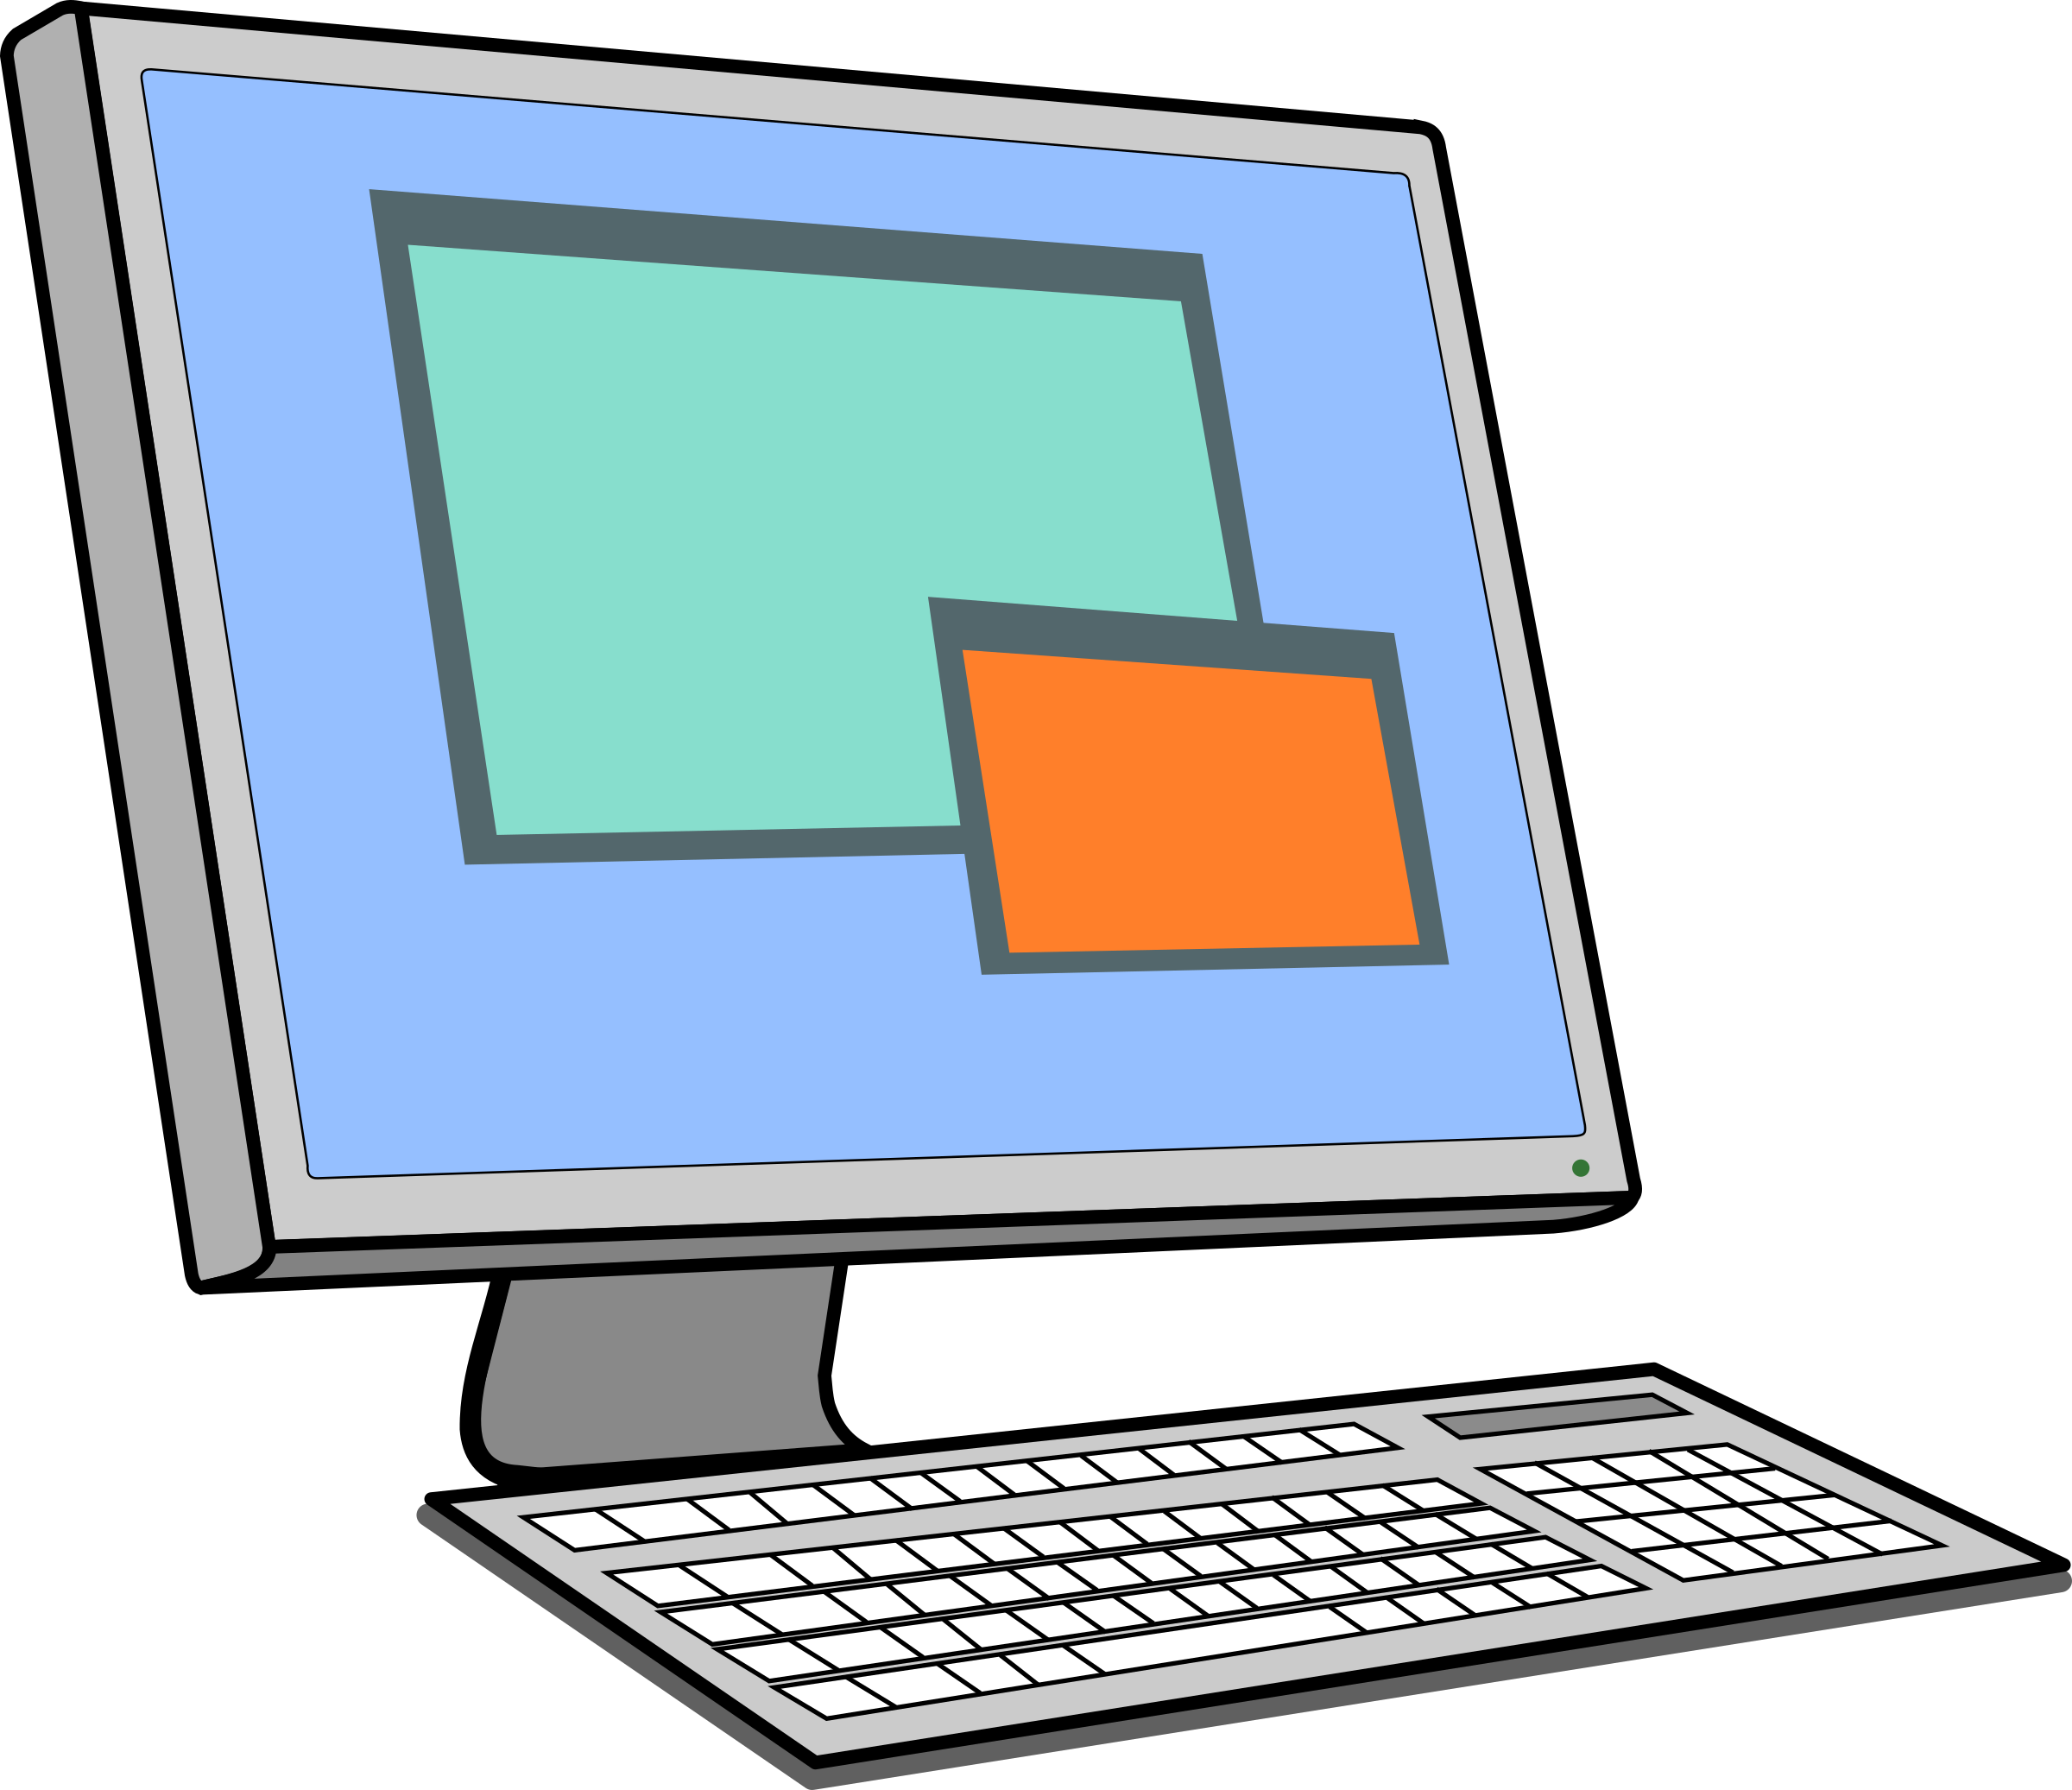 Screen clipart keyboard. And big image png